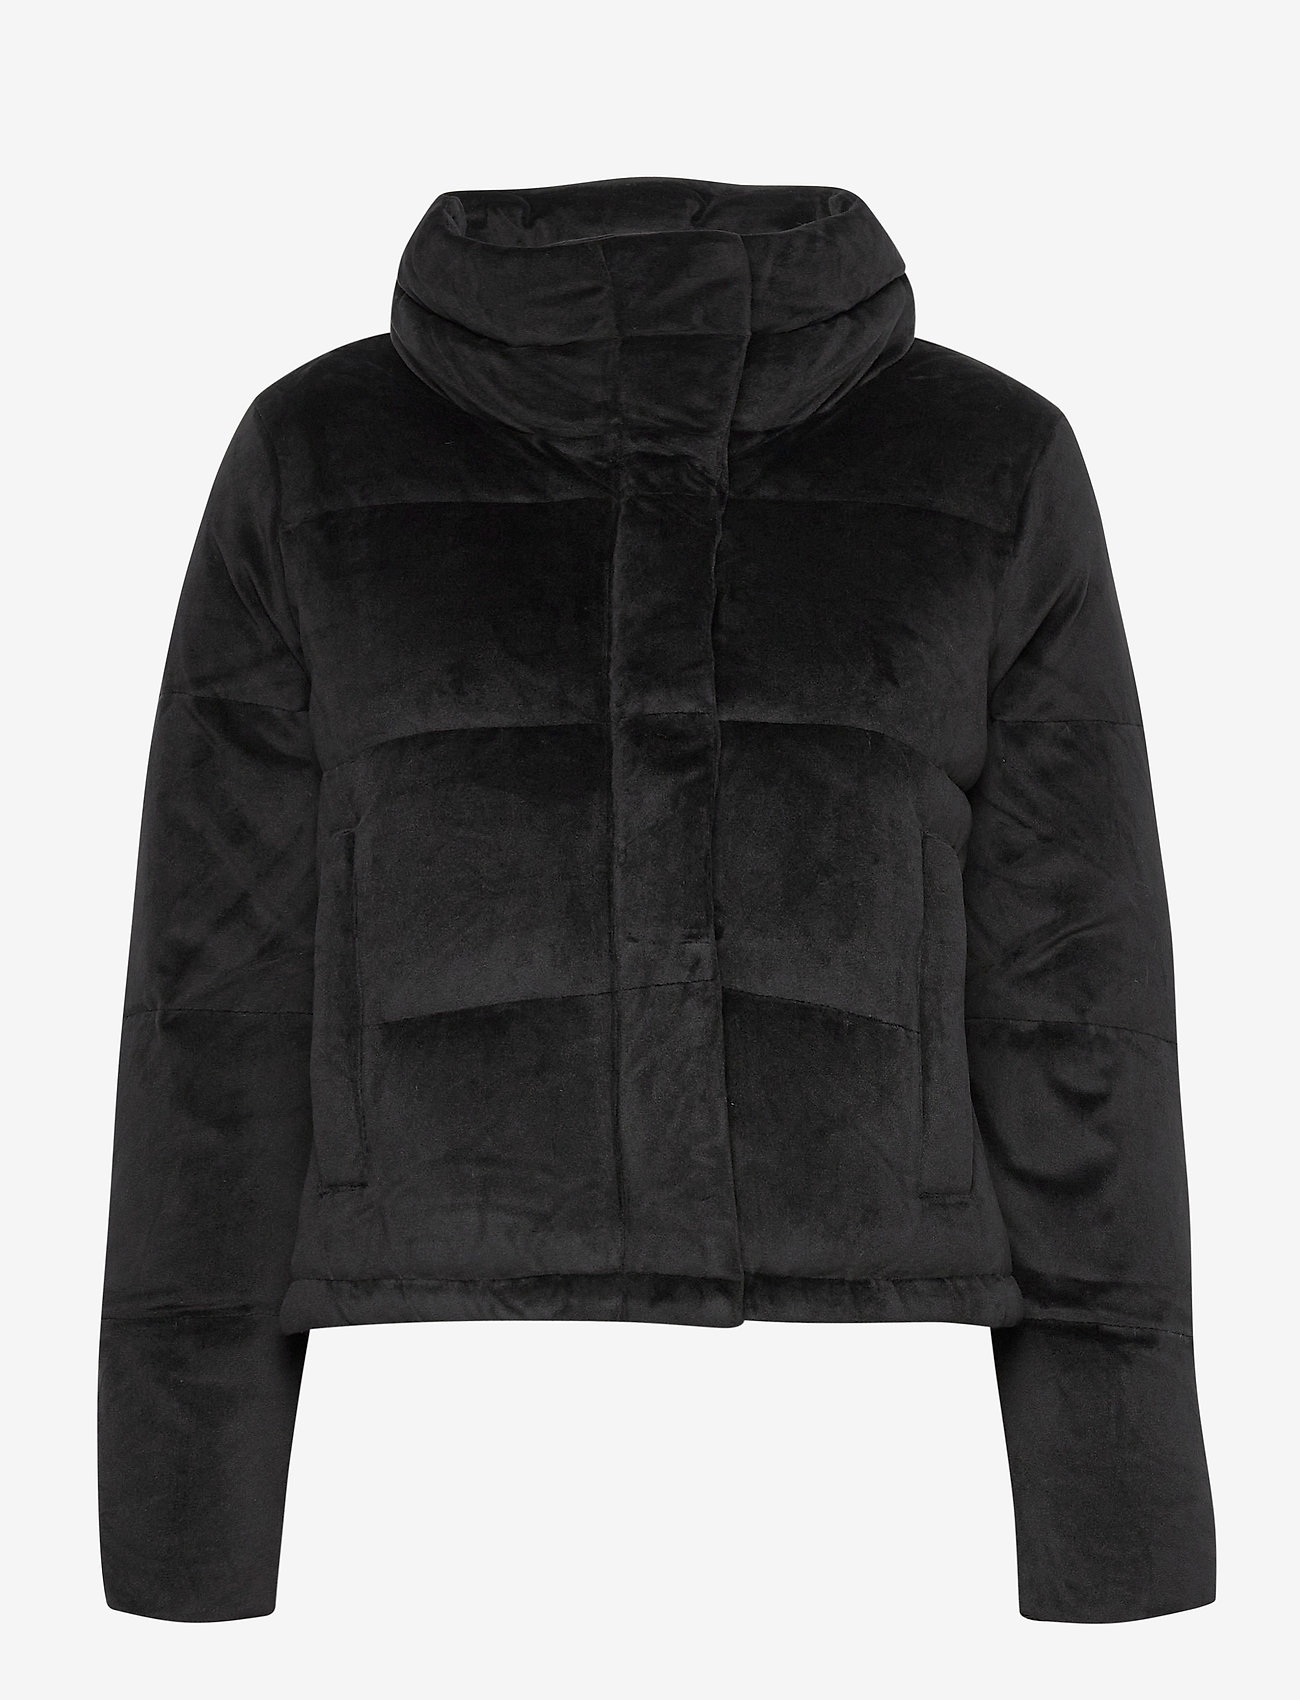 Abercrombie & Fitch - ANF WOMENS OUTERWEAR - faux fur - black sd/texture - 1